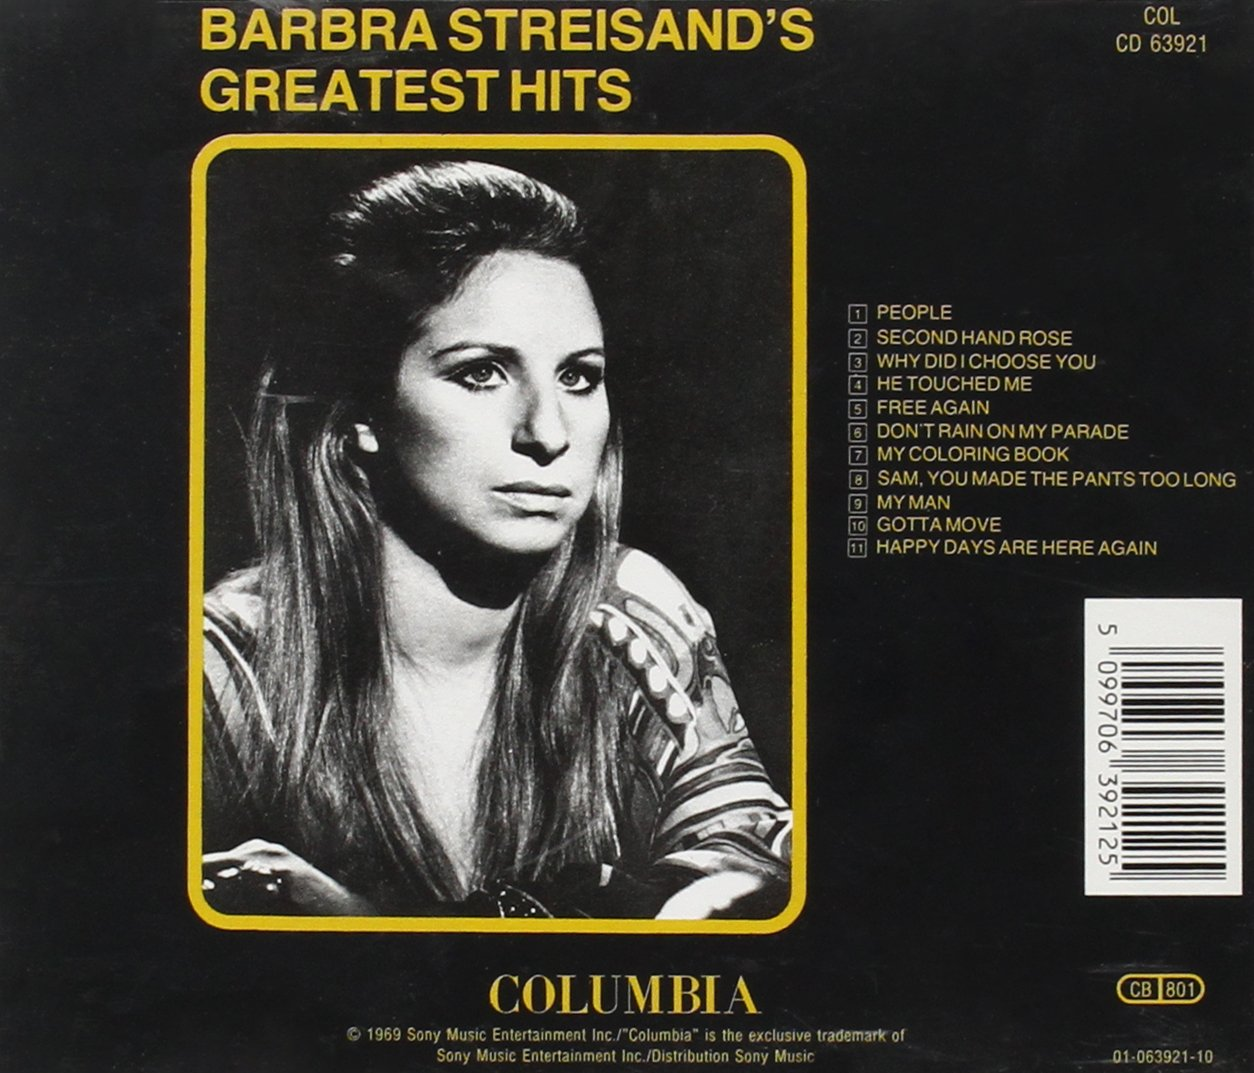 The coloring book barbra streisand - The Coloring Book Barbra Streisand 6